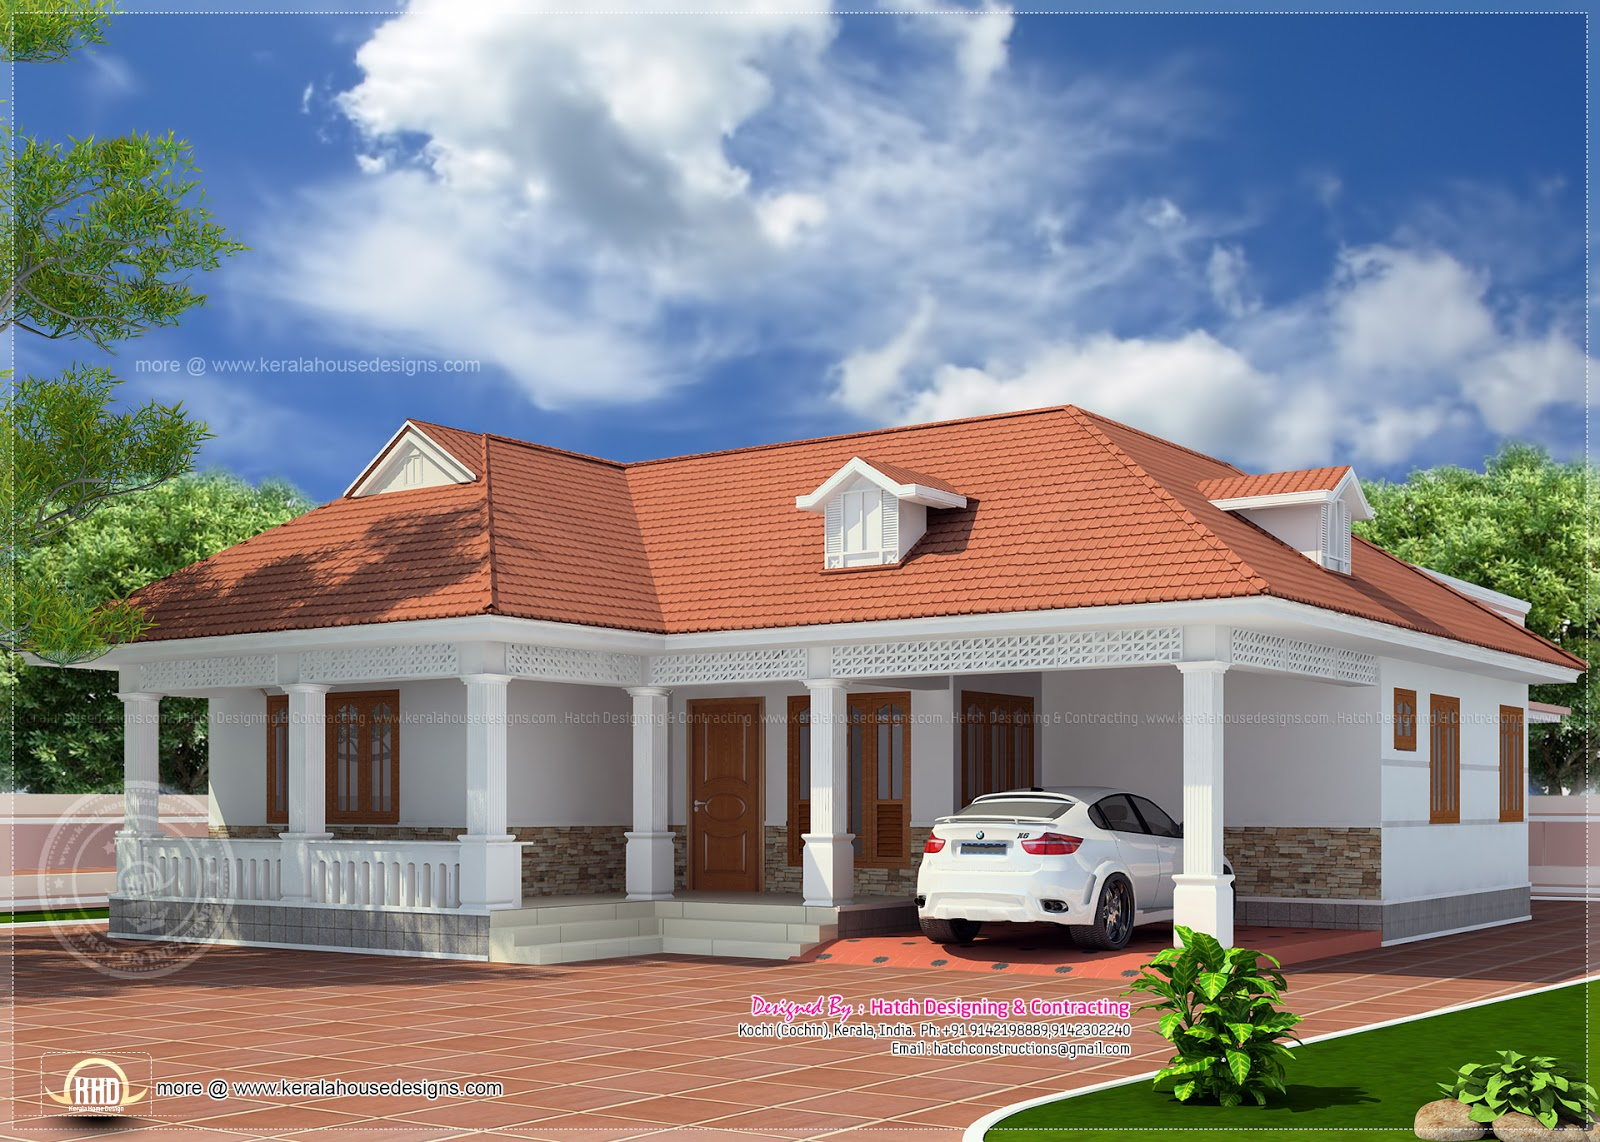 1850 kerala style home elevation kerala home for House plans in kerala